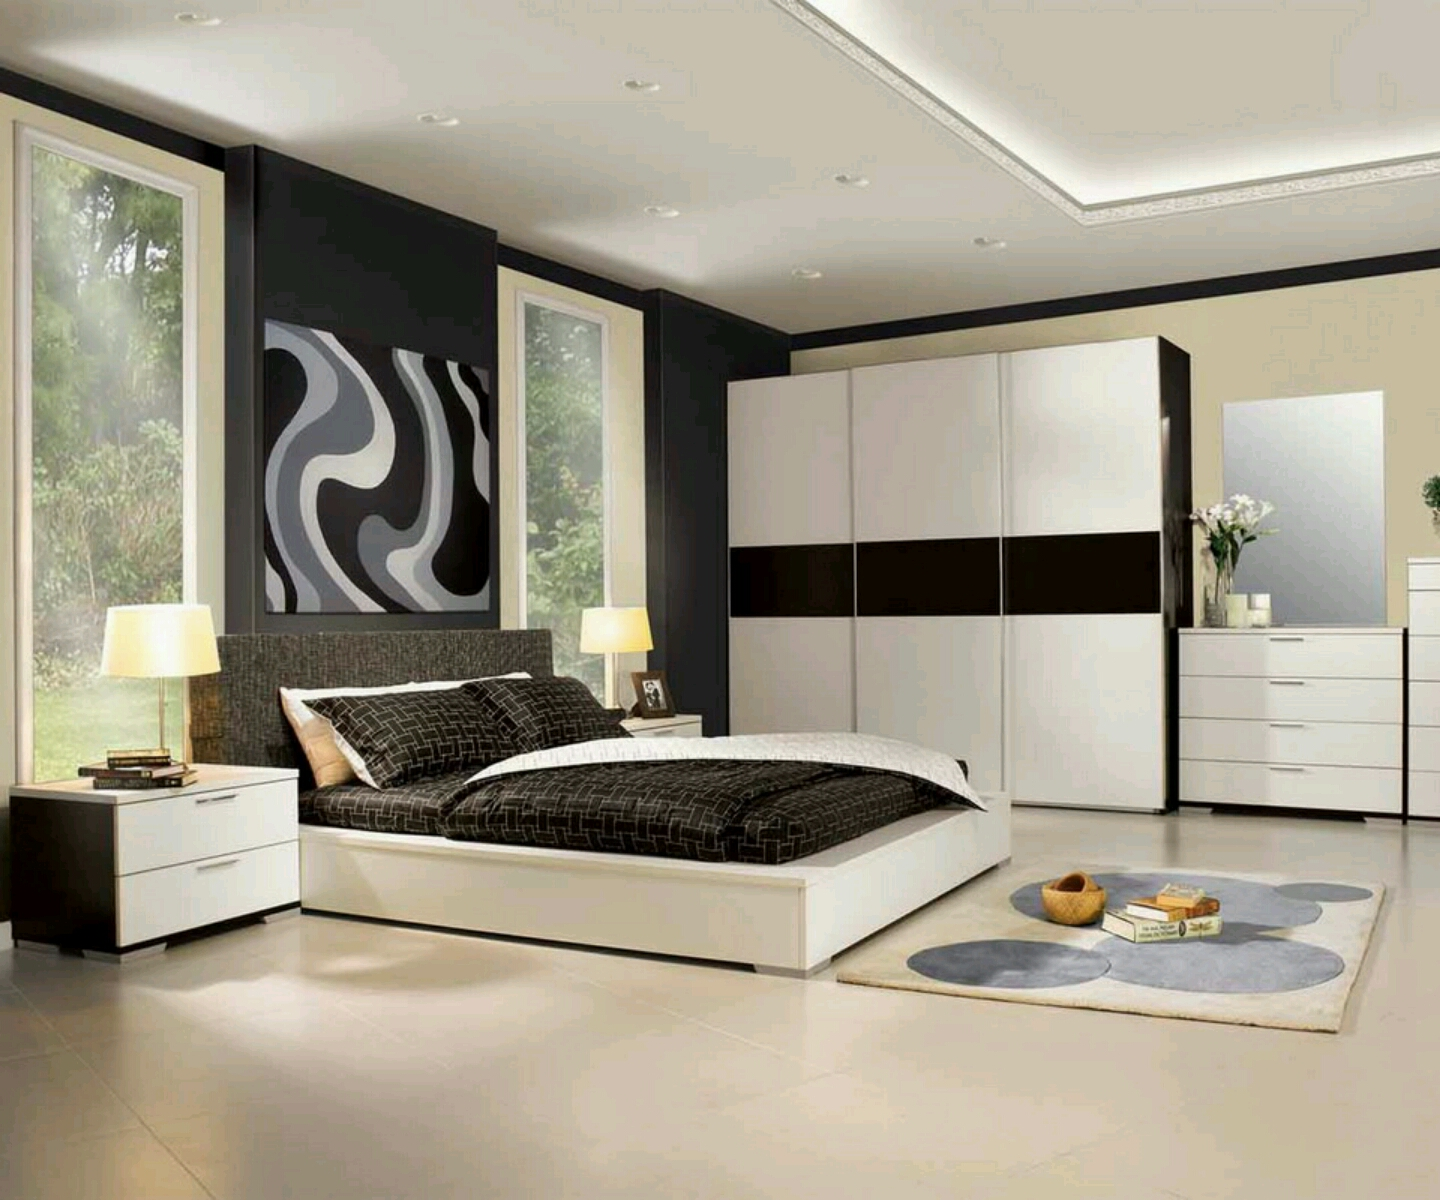 Best design home december 2012 for Bedroom furniture layout